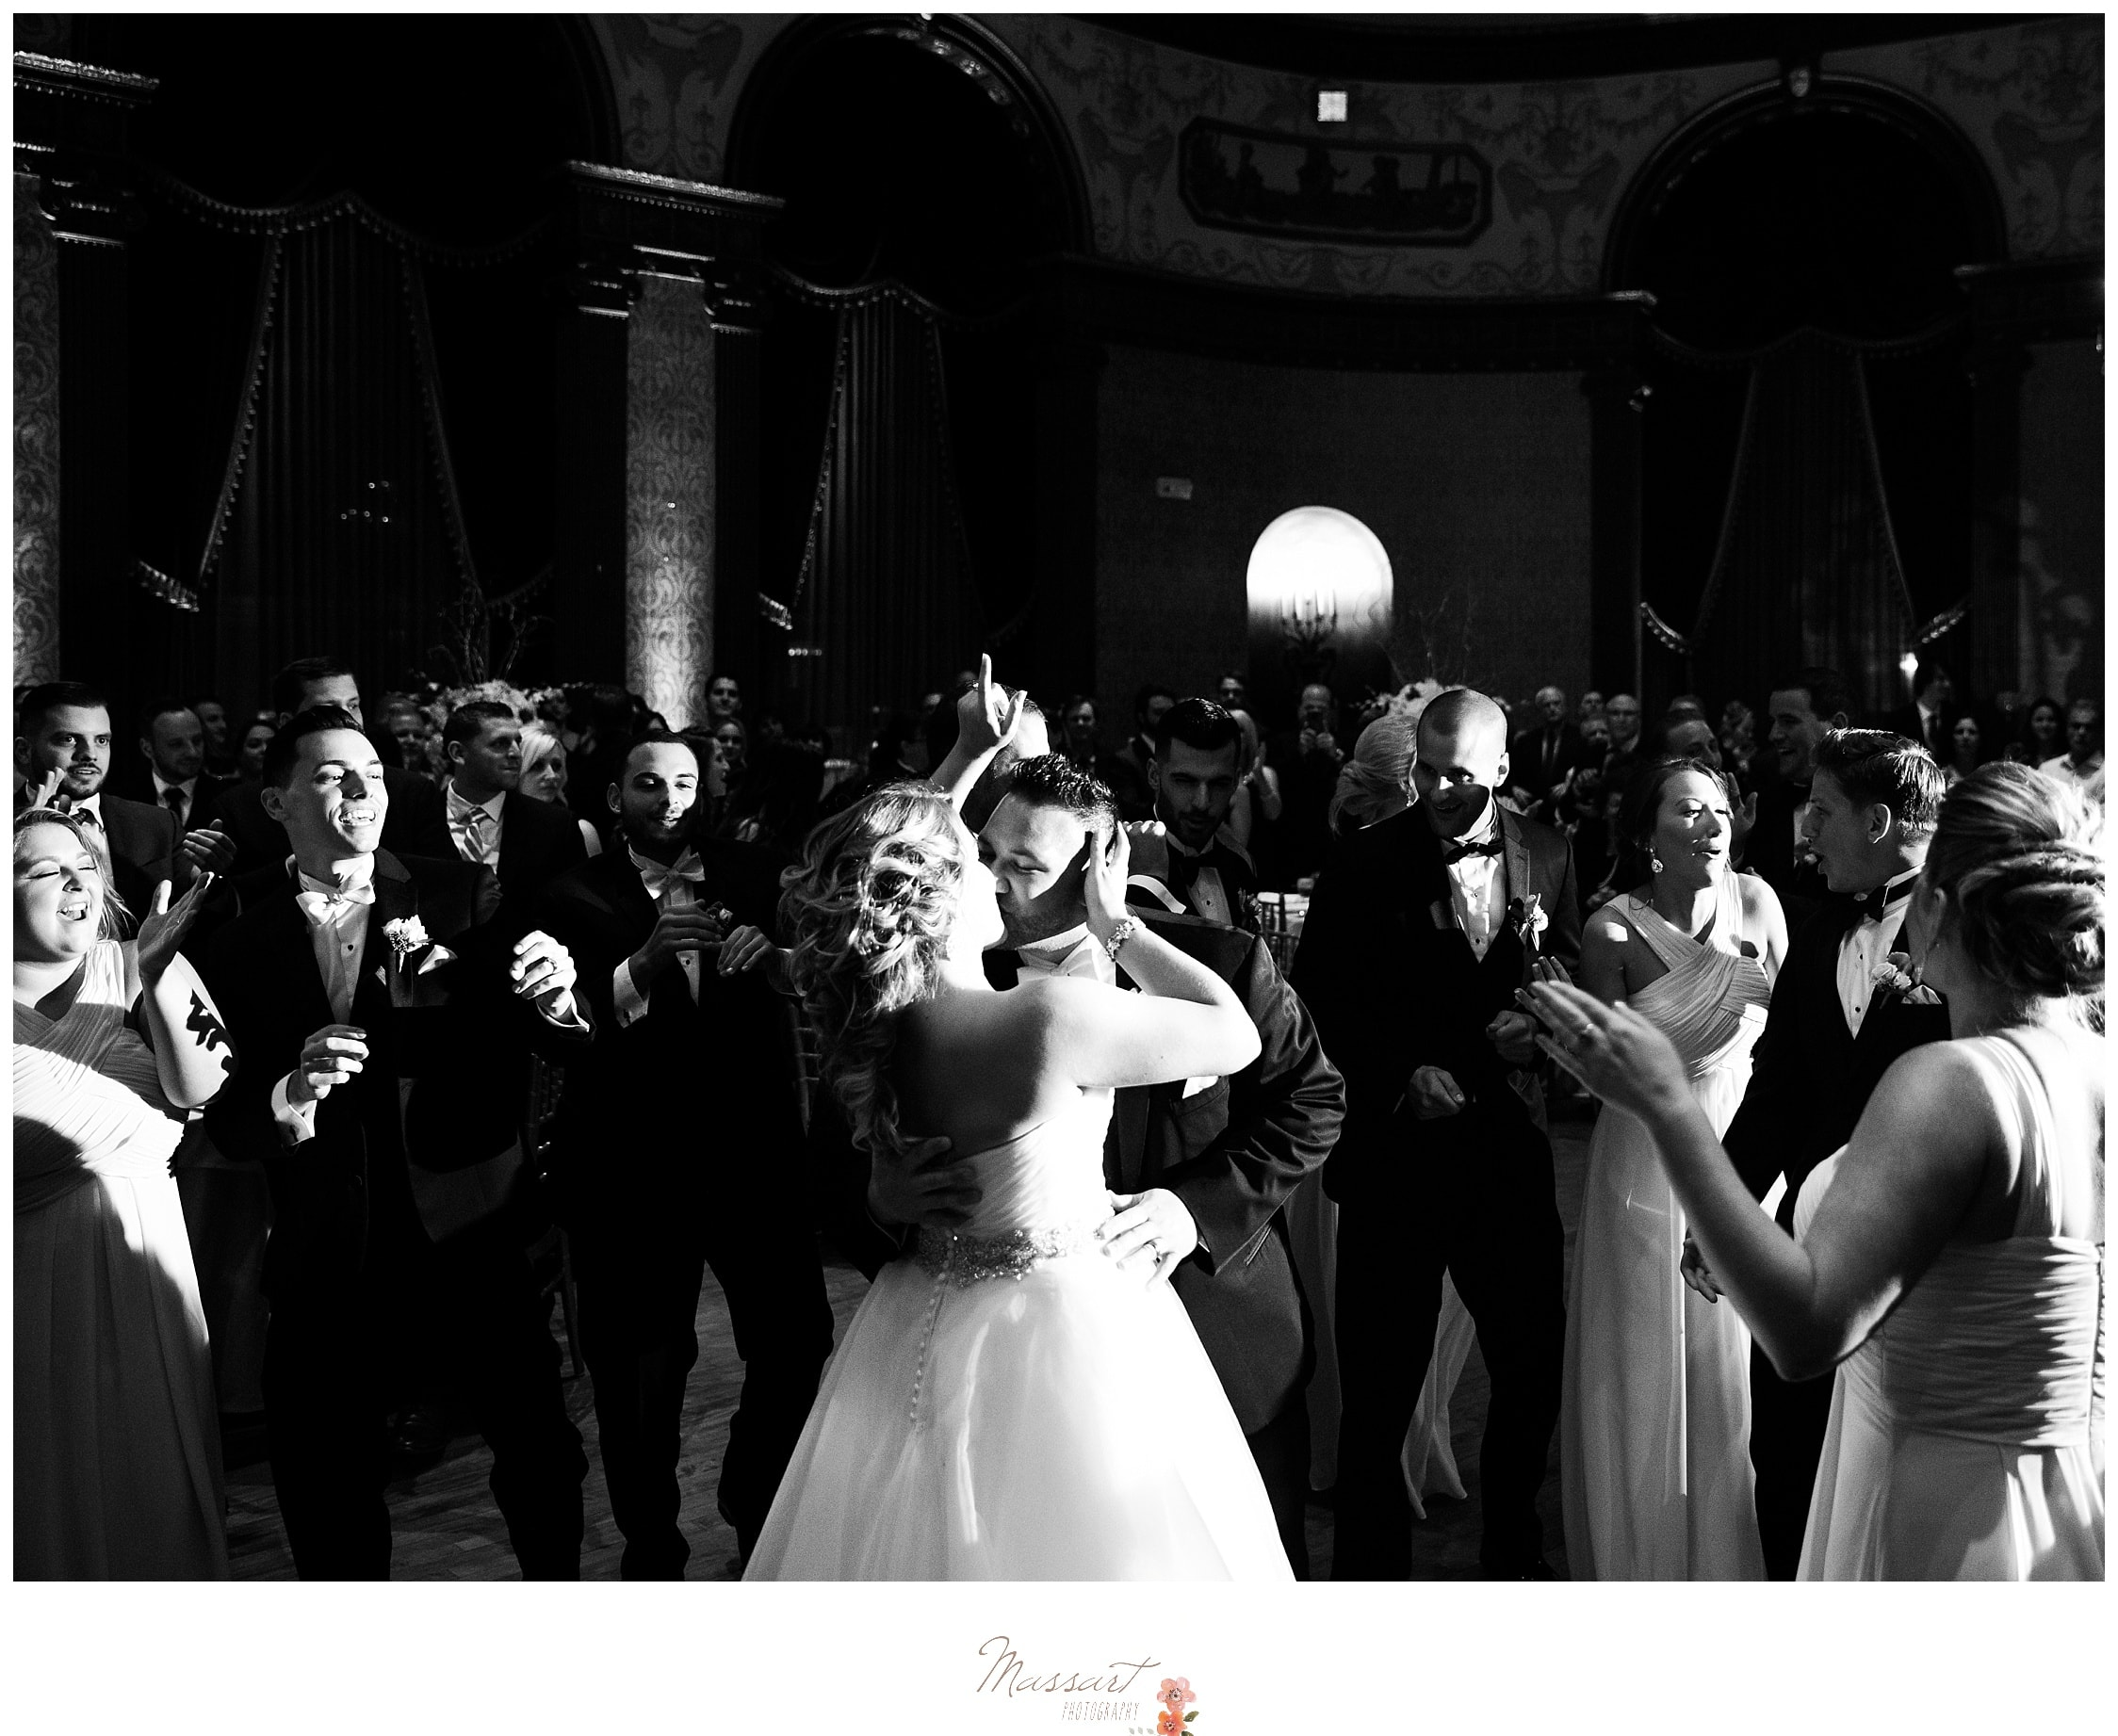 The bride and groom kiss on the dance floor surrounded by their friends and family photographed by Massart Photography Rhode Island